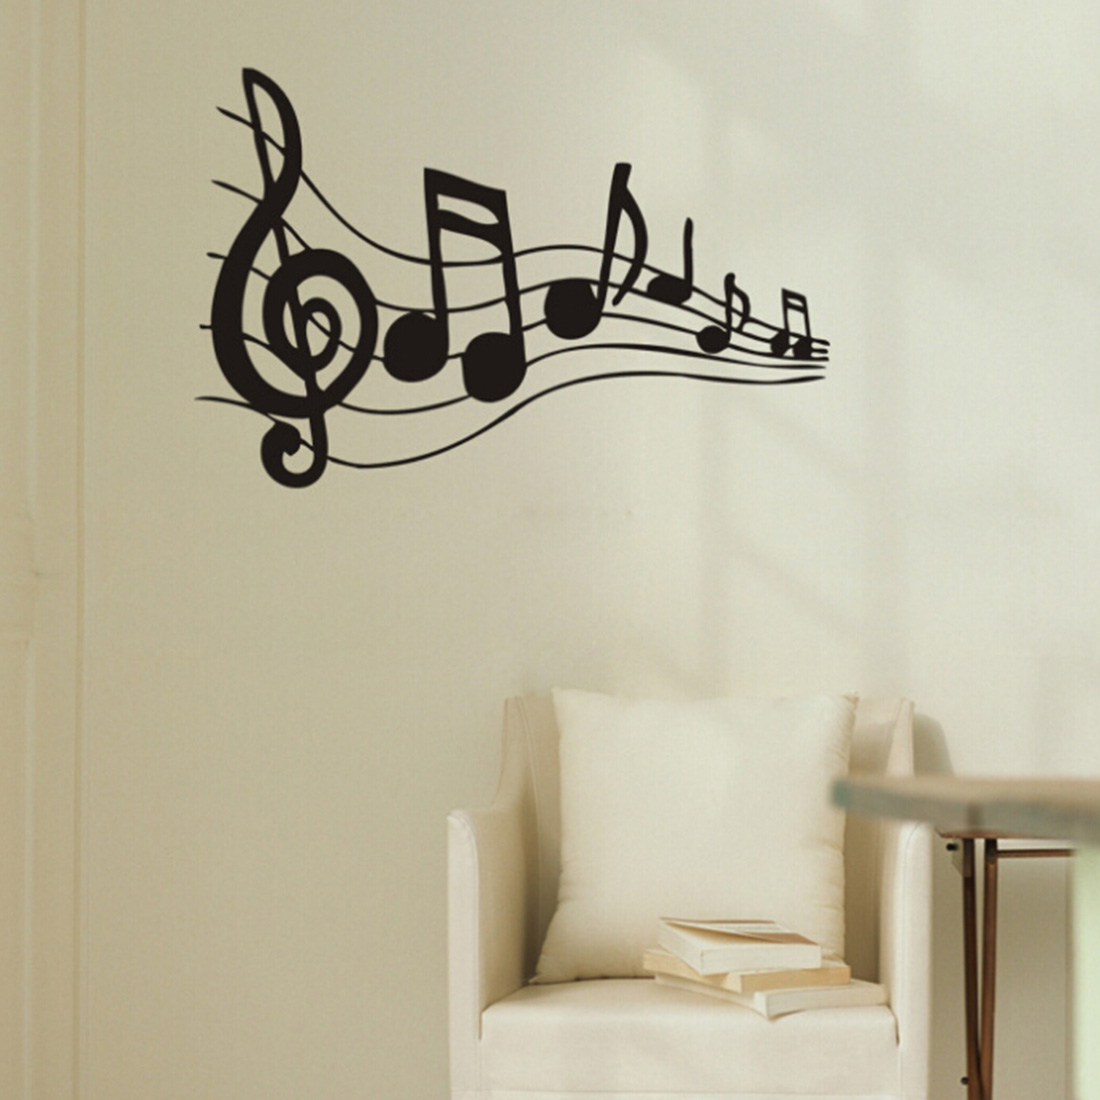 Graffiti wall vinyl - 2017 Hot And New Removable Sticker Paper Music Note Pattern Graffiti Wall Home Decor Vinyl Decal